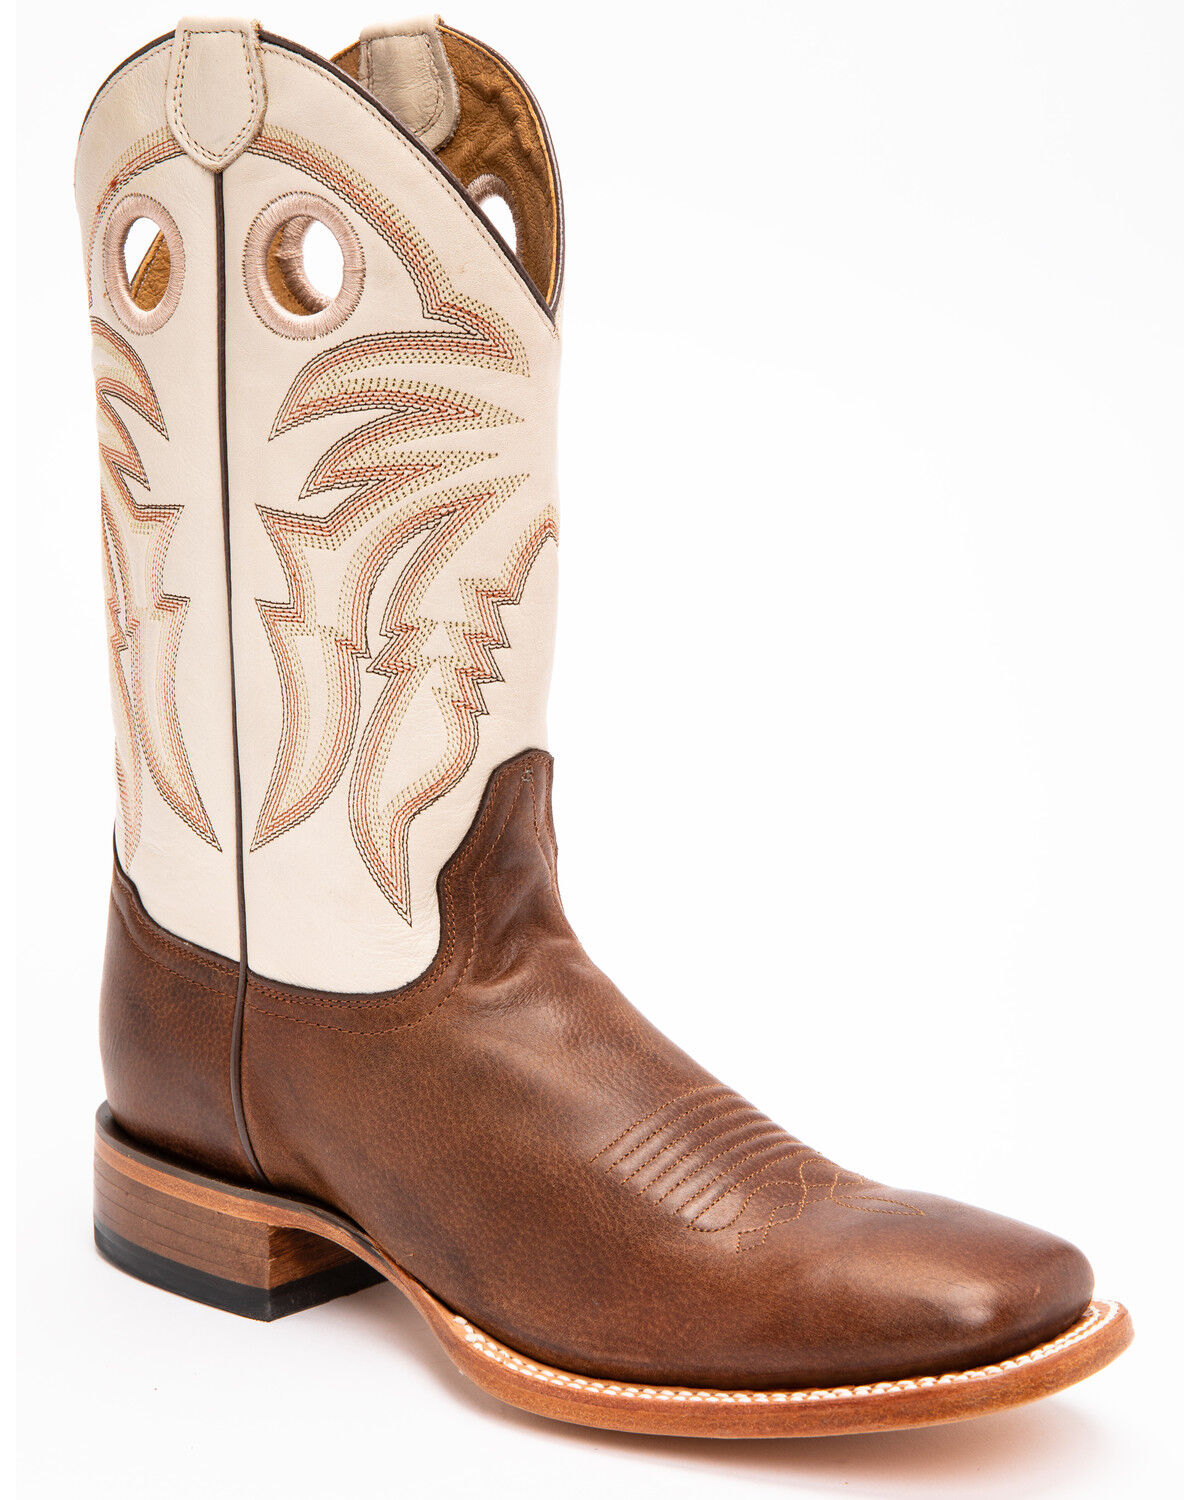 Men's Cody James Boots - Country Outfitter